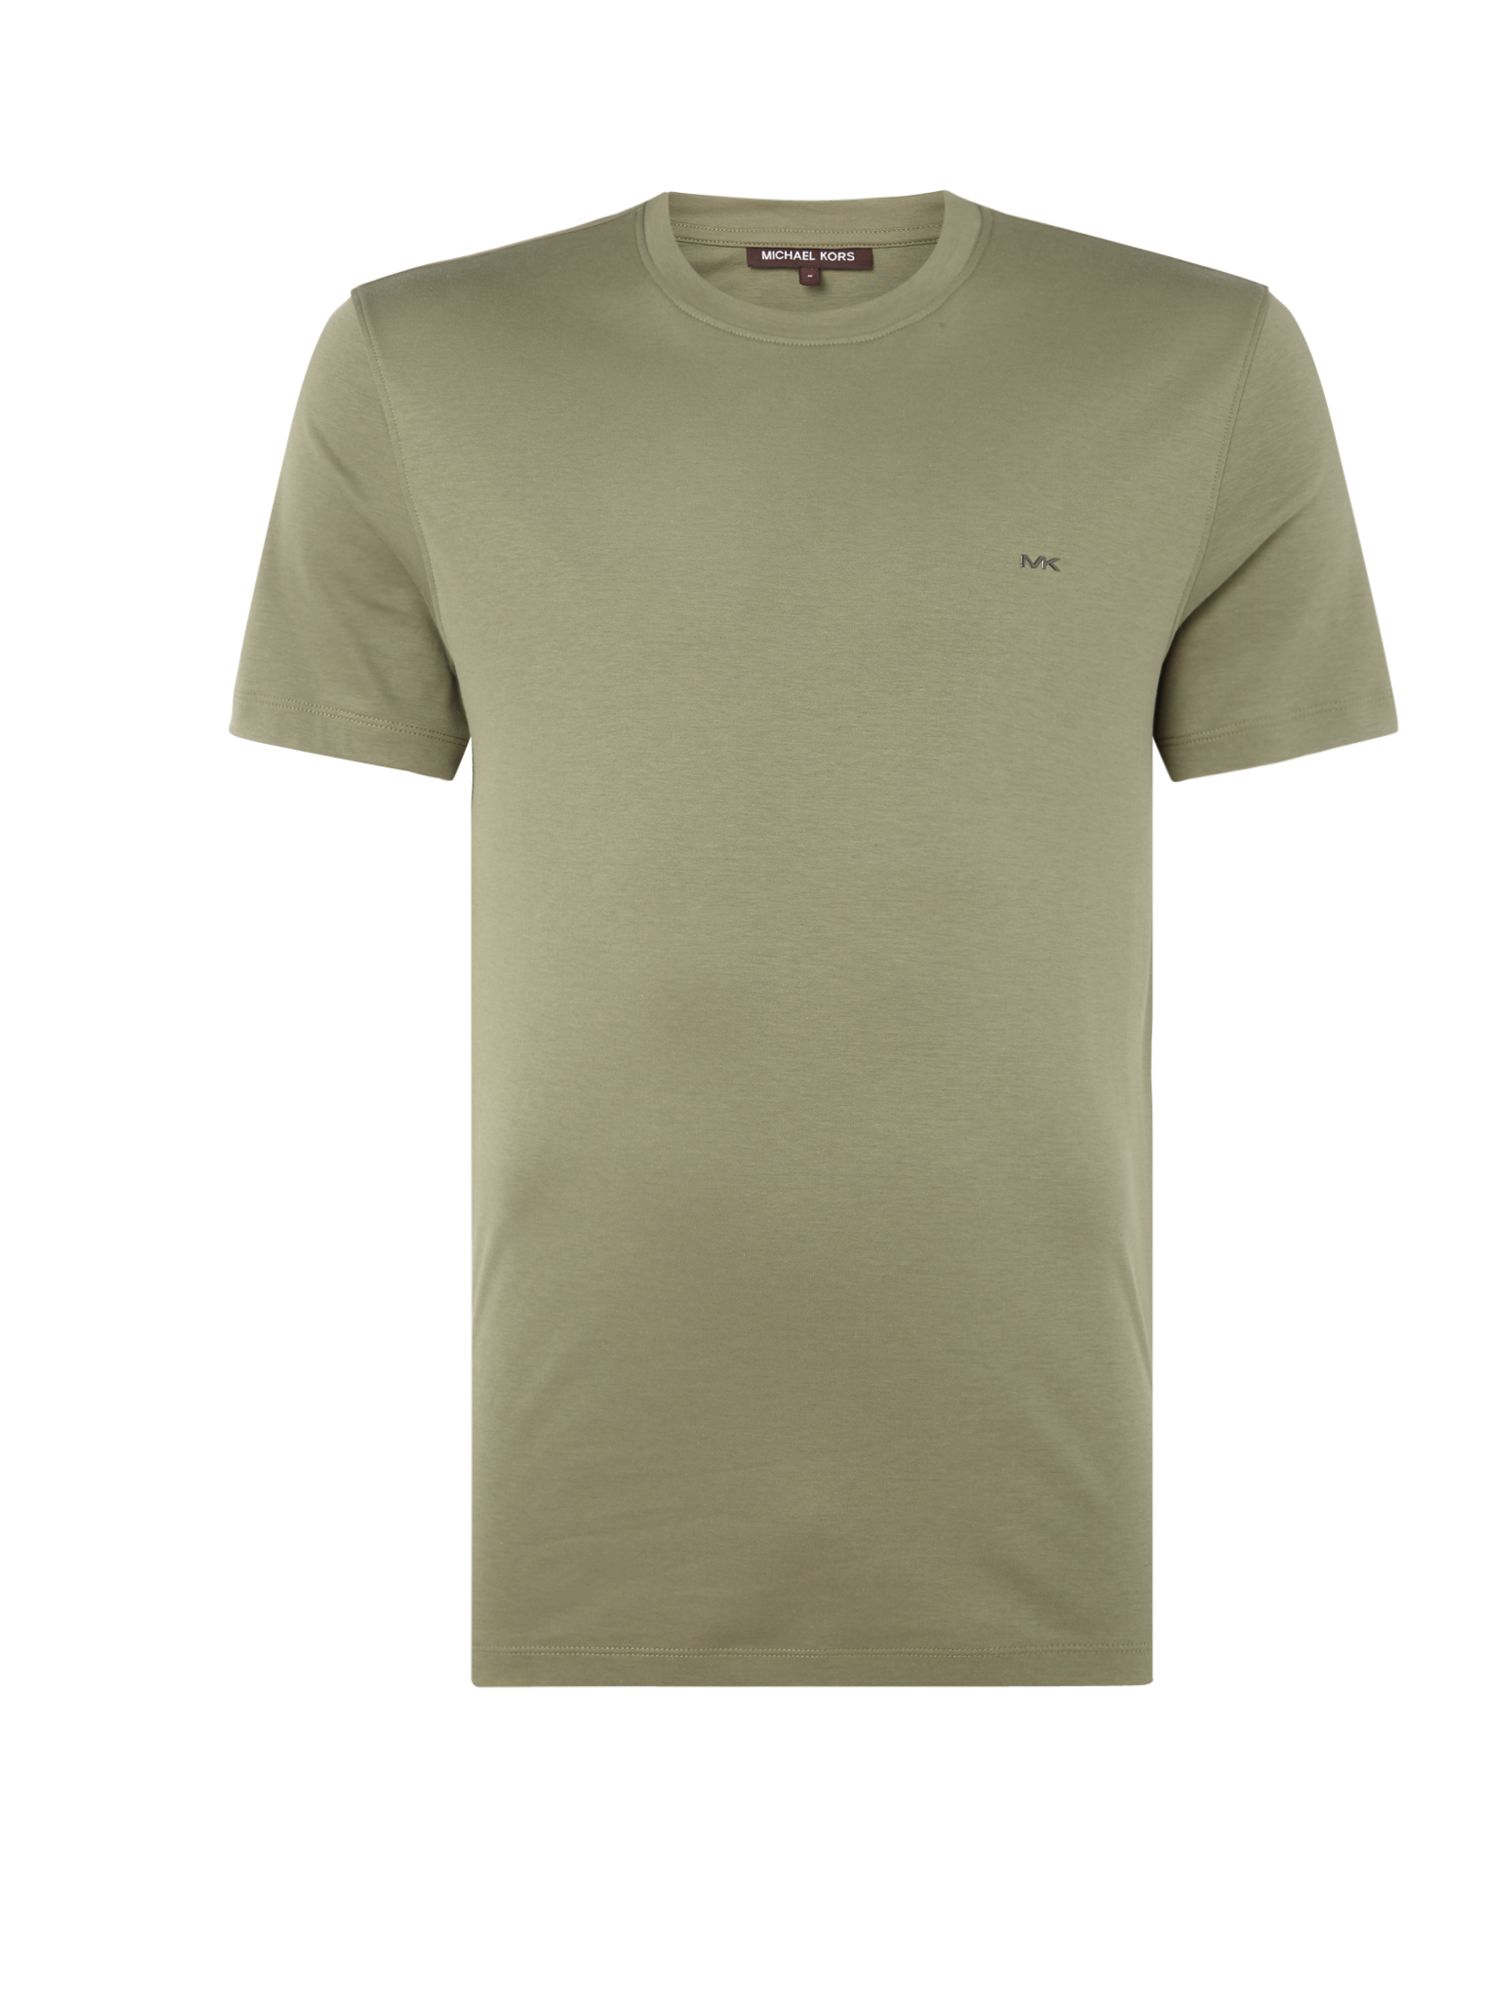 Men's Michael Kors Sleek Crew Neck T-Shirt, Green